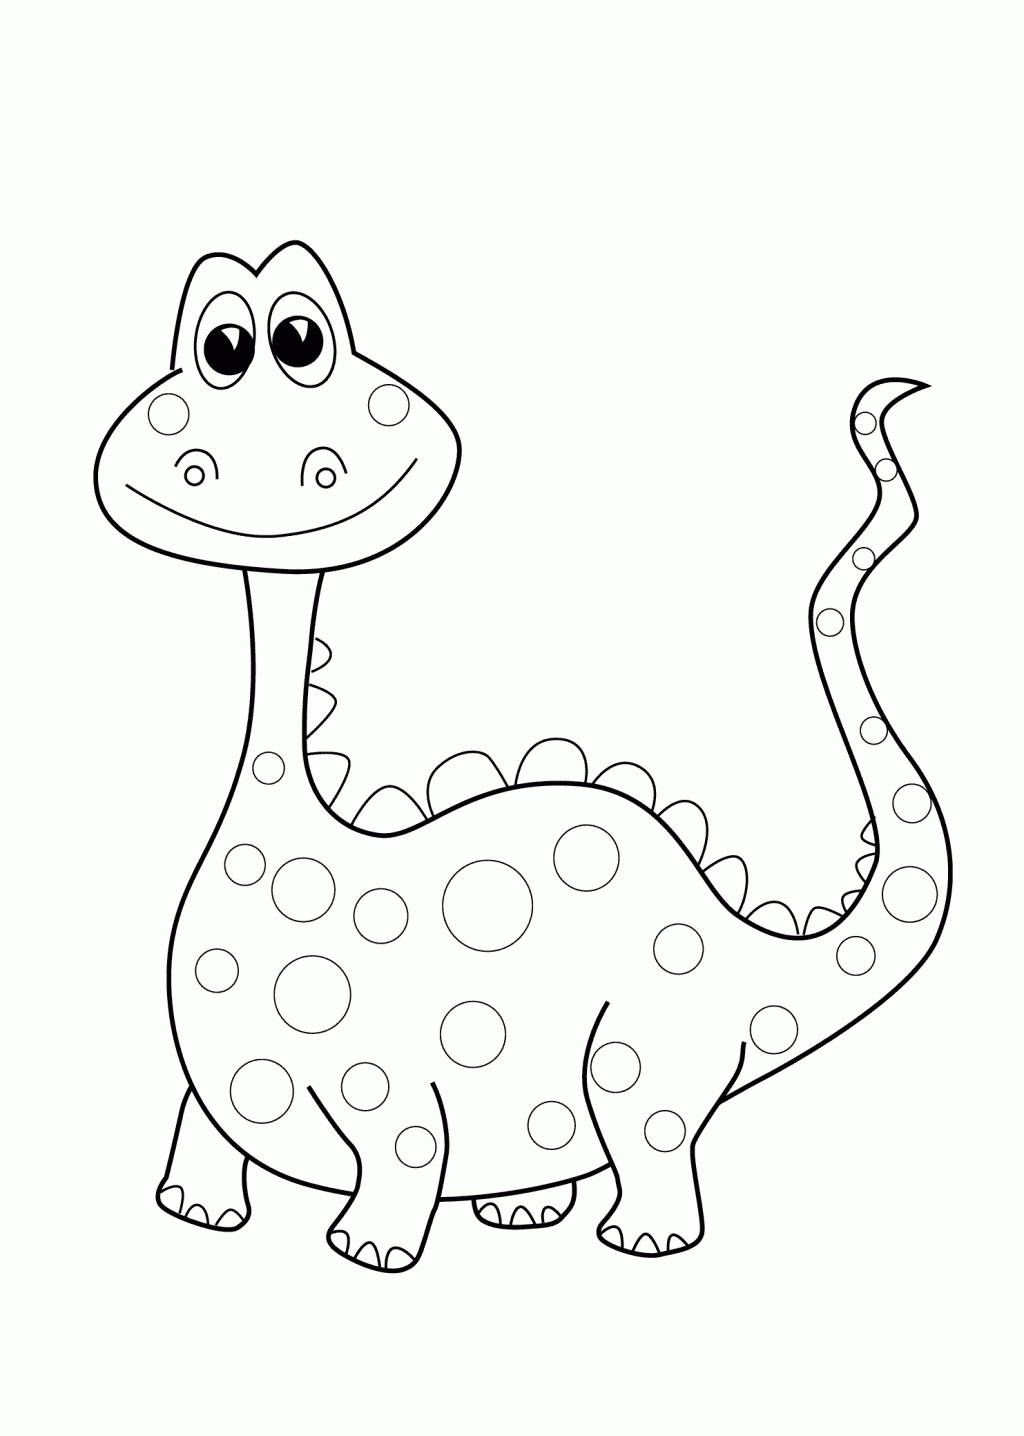 Coloring Page ~ Splendi Free Coloring Sheets For Kids Printable - Free Printable Pages For Preschoolers